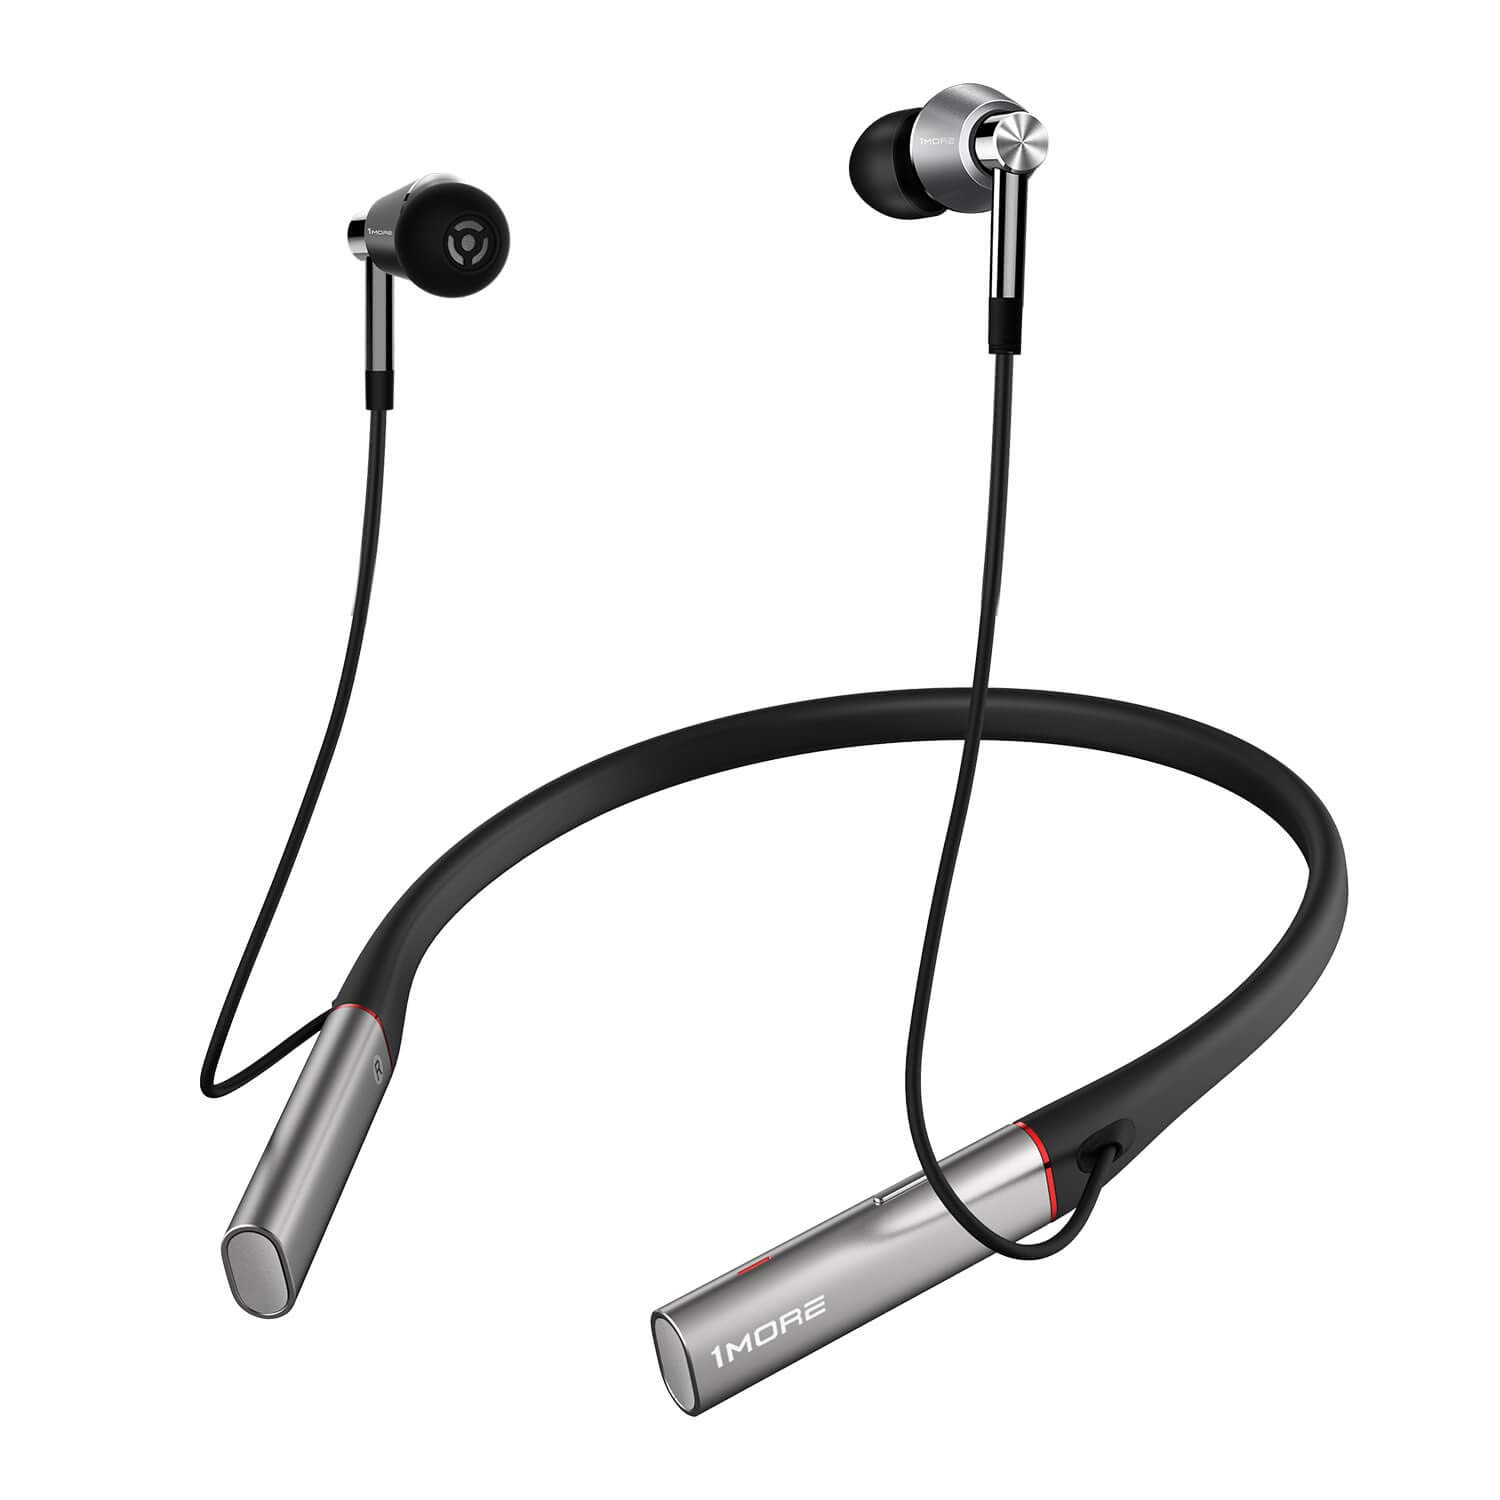 1MORE Triple Driver BT in-Ear Headphones Bluetooth Earphones with Hi-Res LDAC Wireless Sound Quality, Environmental Noise Isolation, Fast Charging, Volume Controls with Microphone - Silver by 1MORE